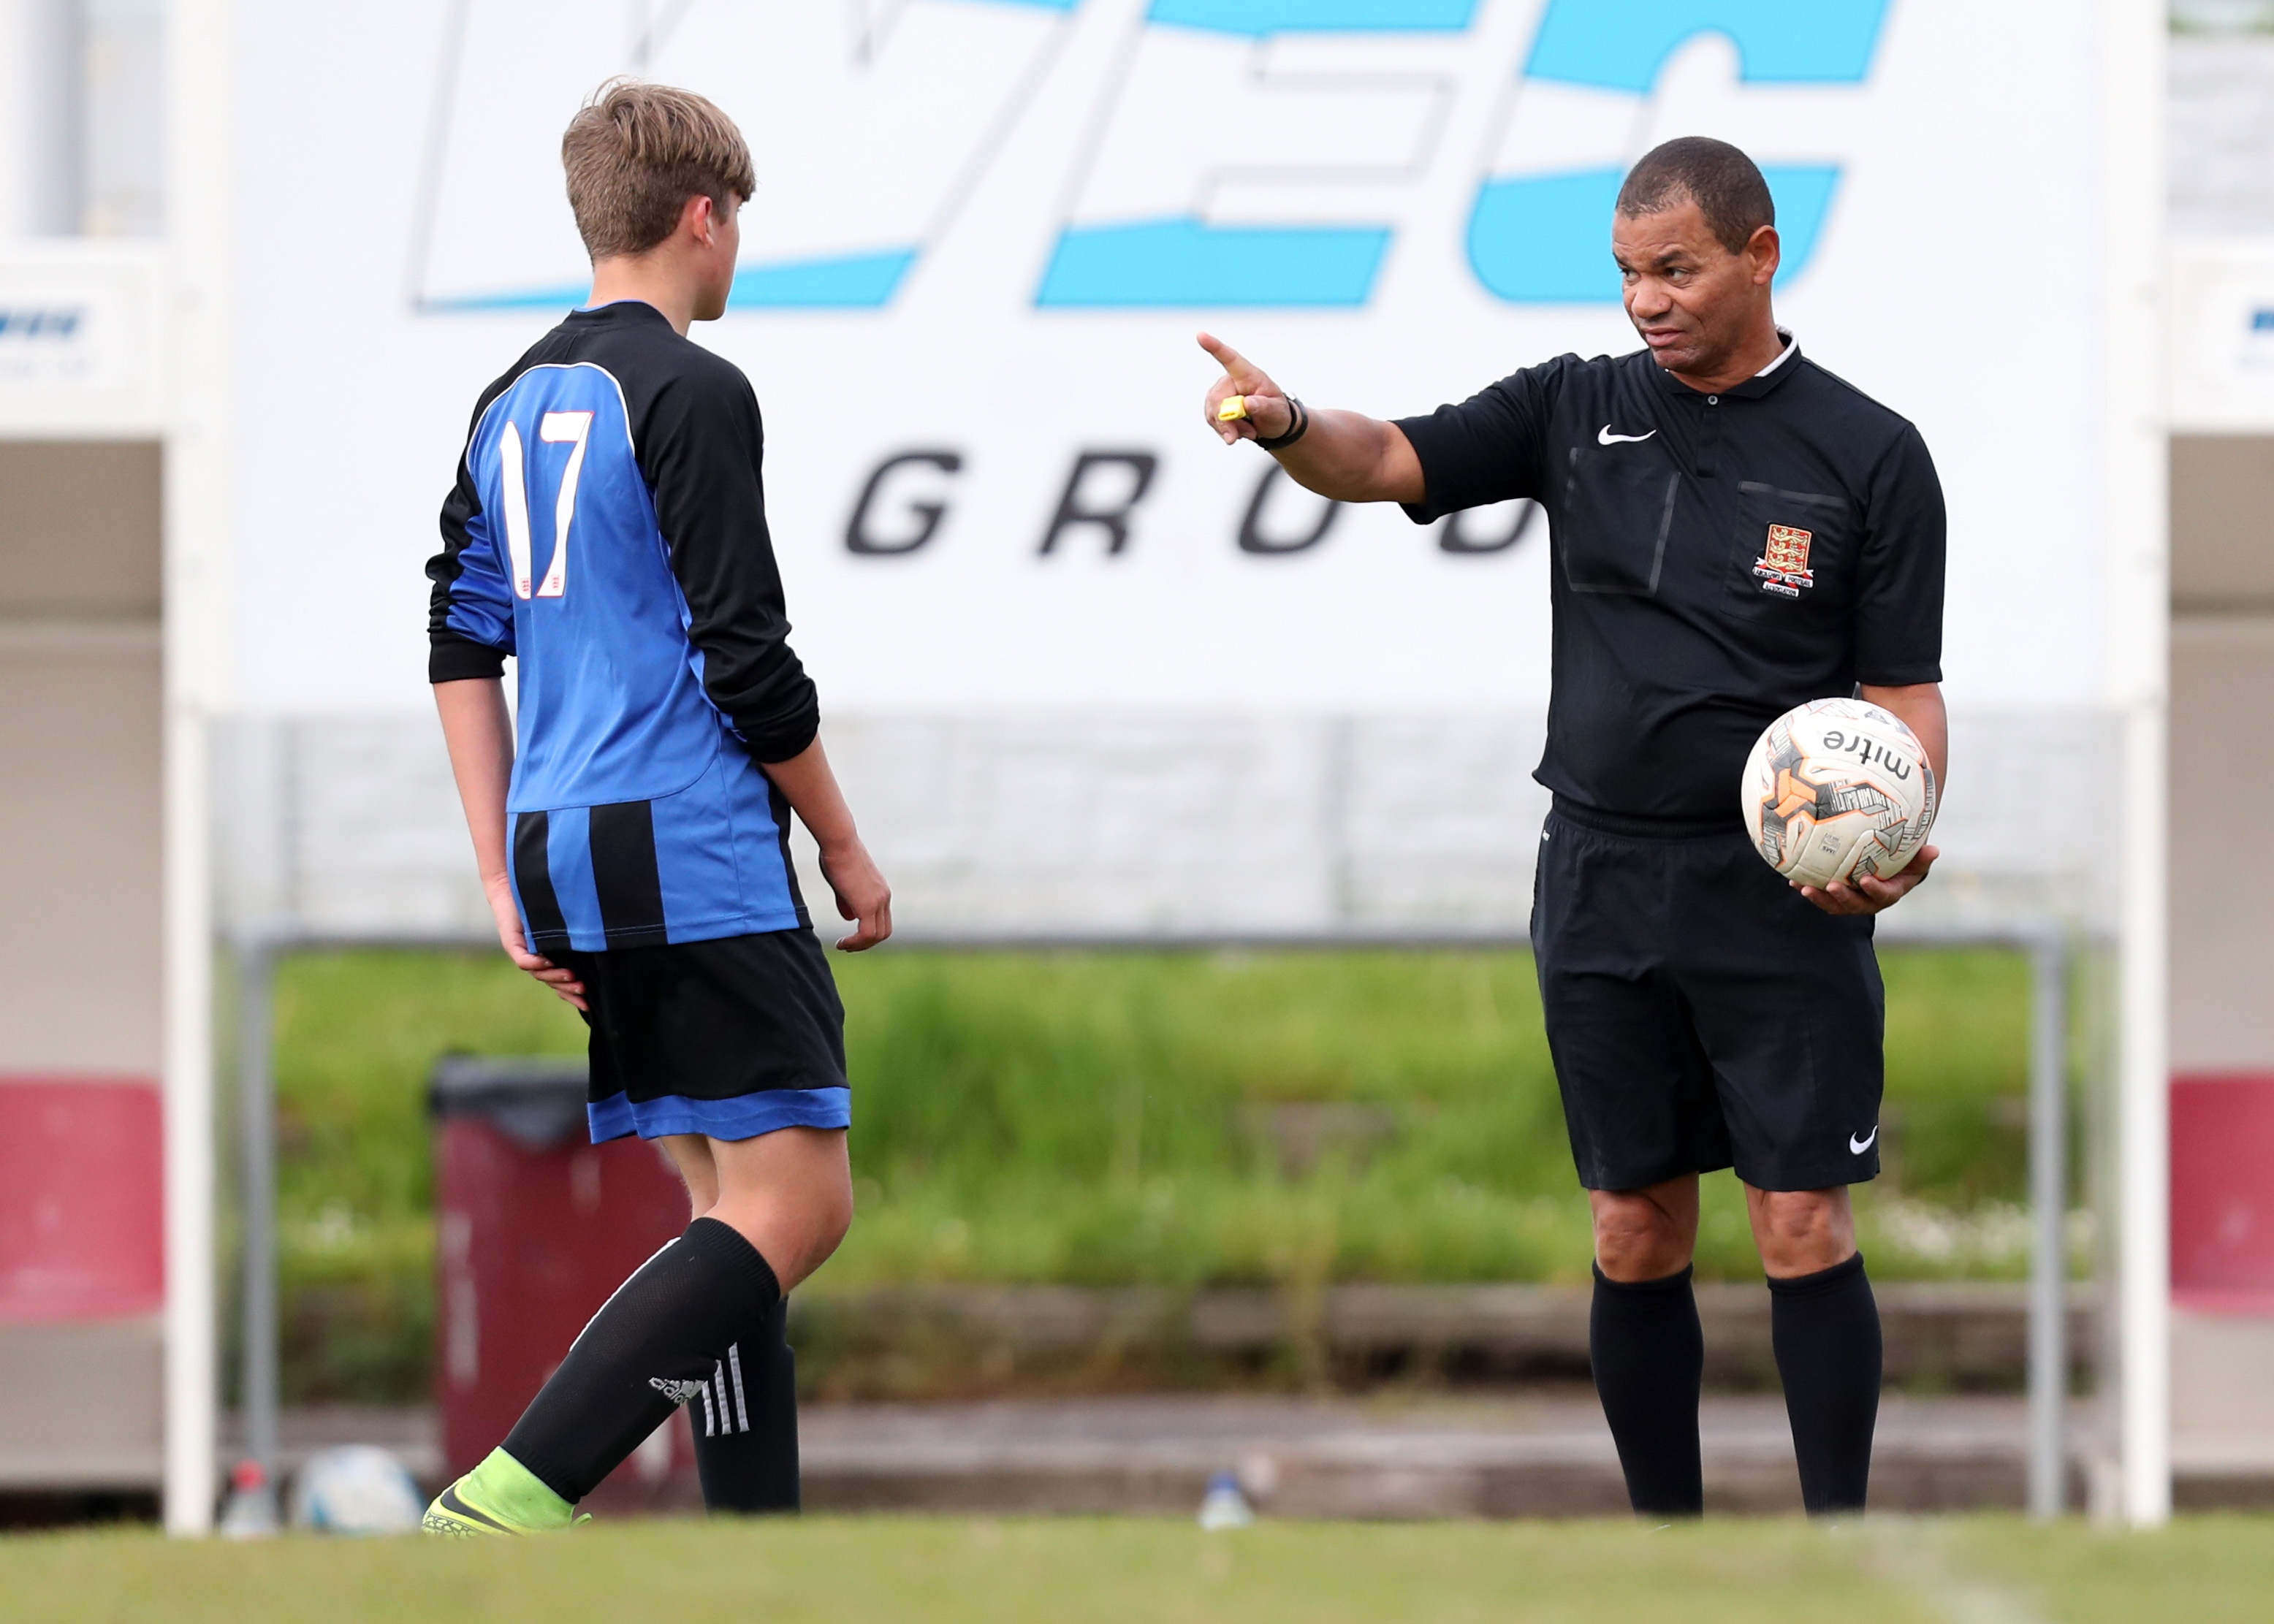 Football law changes - referee surrounding.jpg